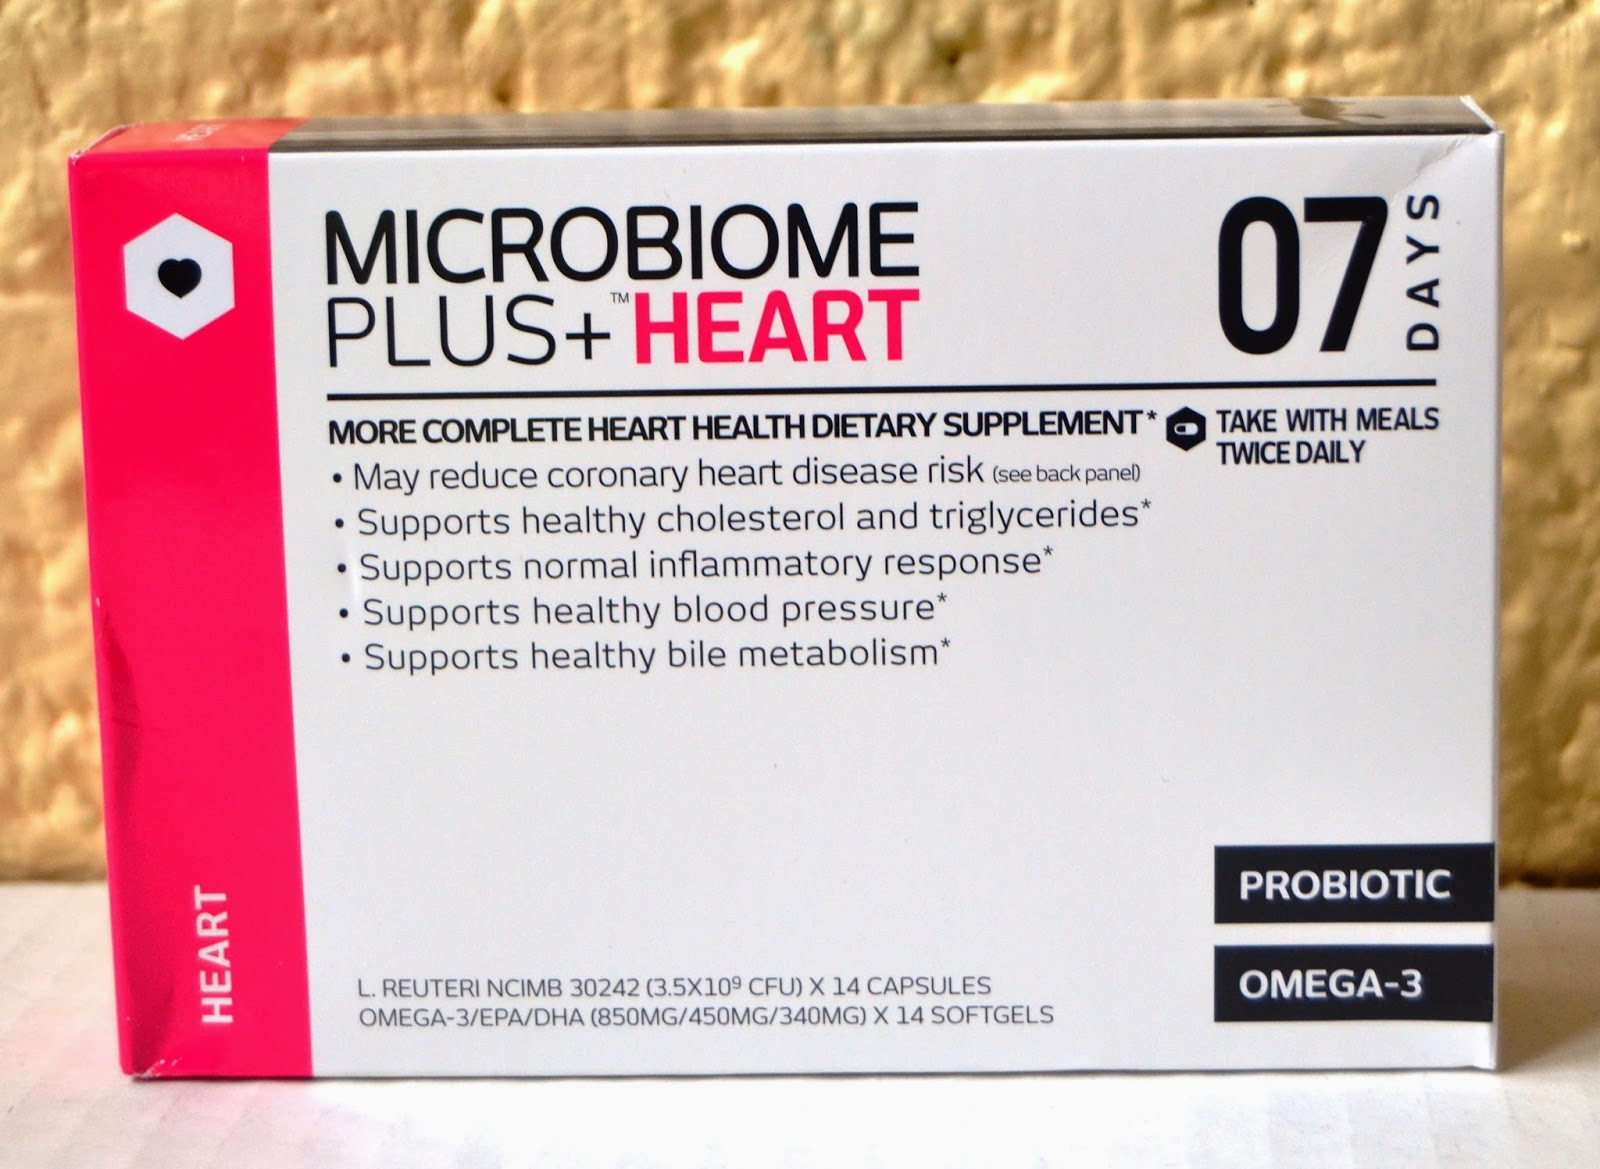 Microbiome Plus+ Heart Supplement- omega-3 and probiotics